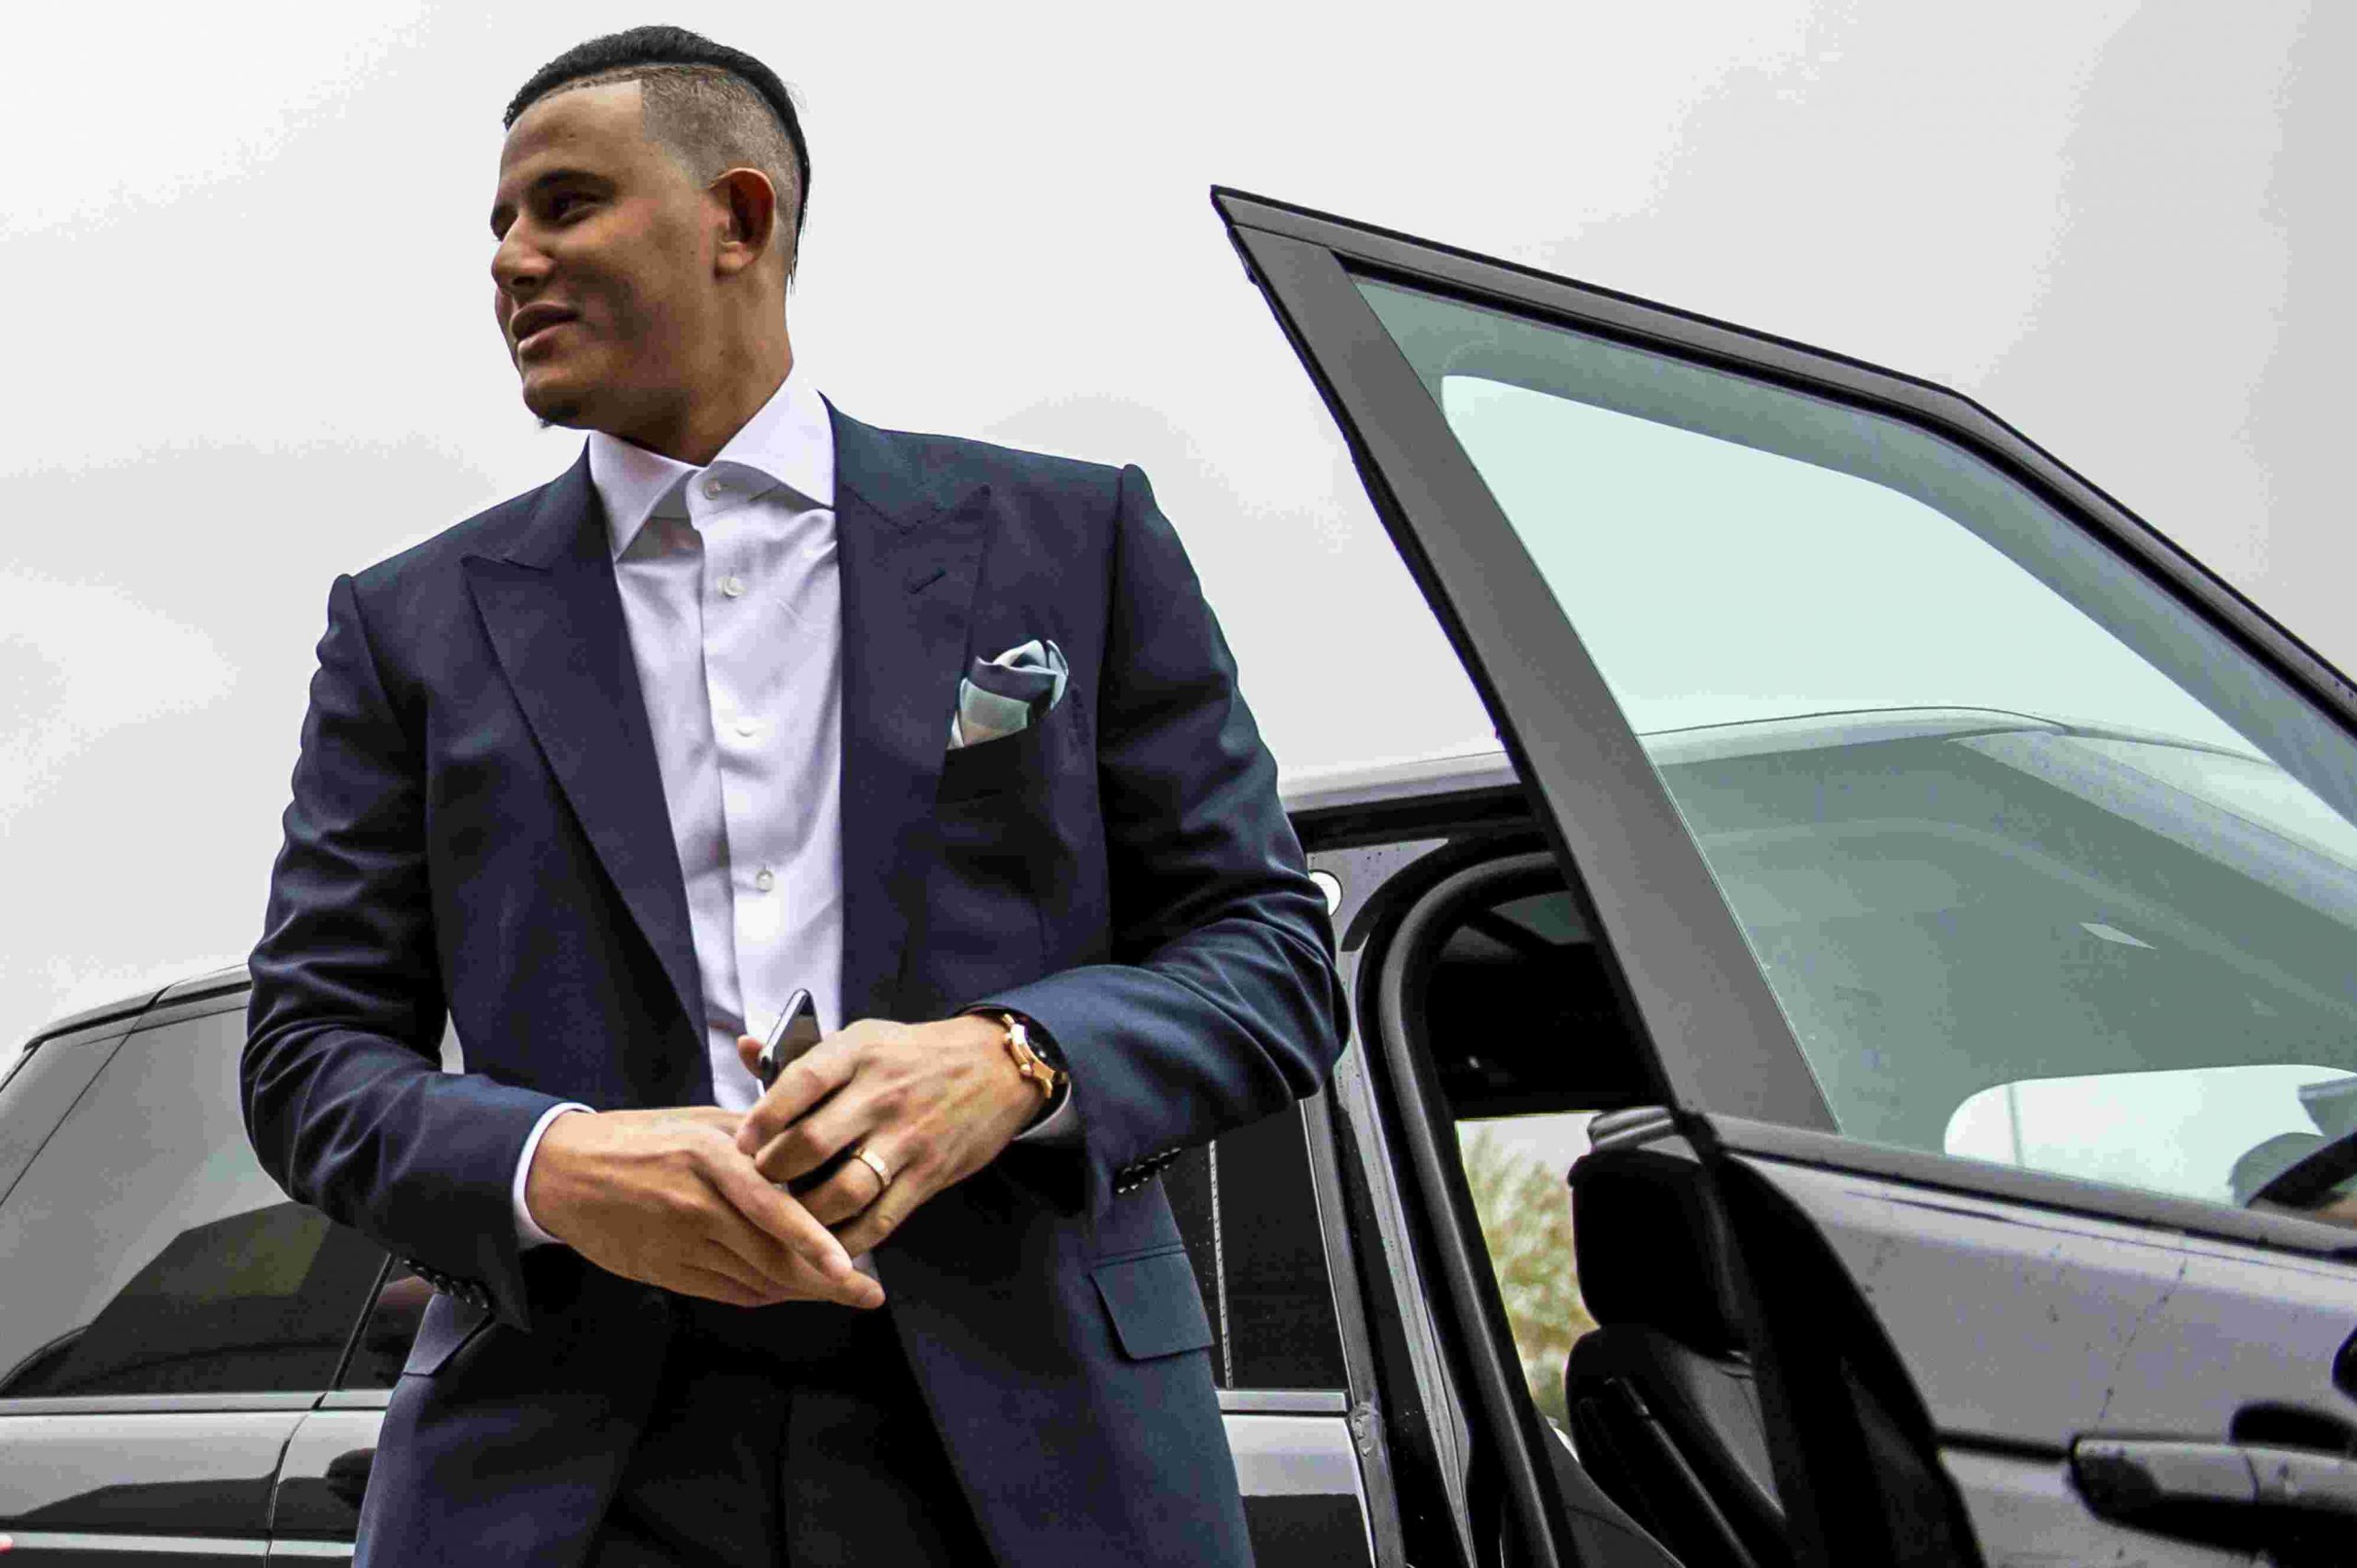 Manny Machado coming out of his car